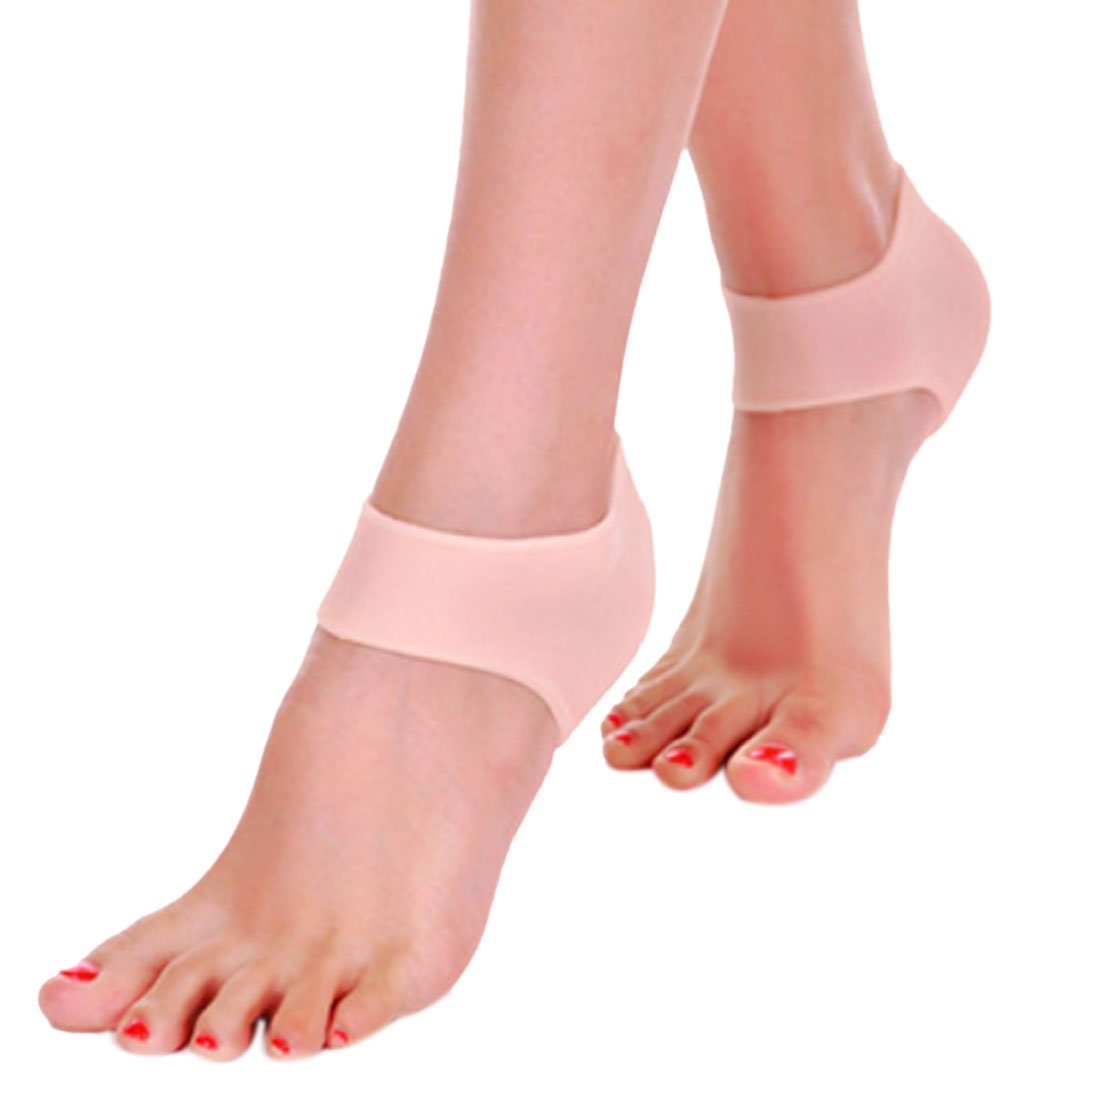 Voberry 1 Pair Silicone Gel Cushion Pad Heel Liner Protective Cracked Skin Feet Pressure Pain Relief Socks for Foot Care Protectors by Voberry (Image #1)